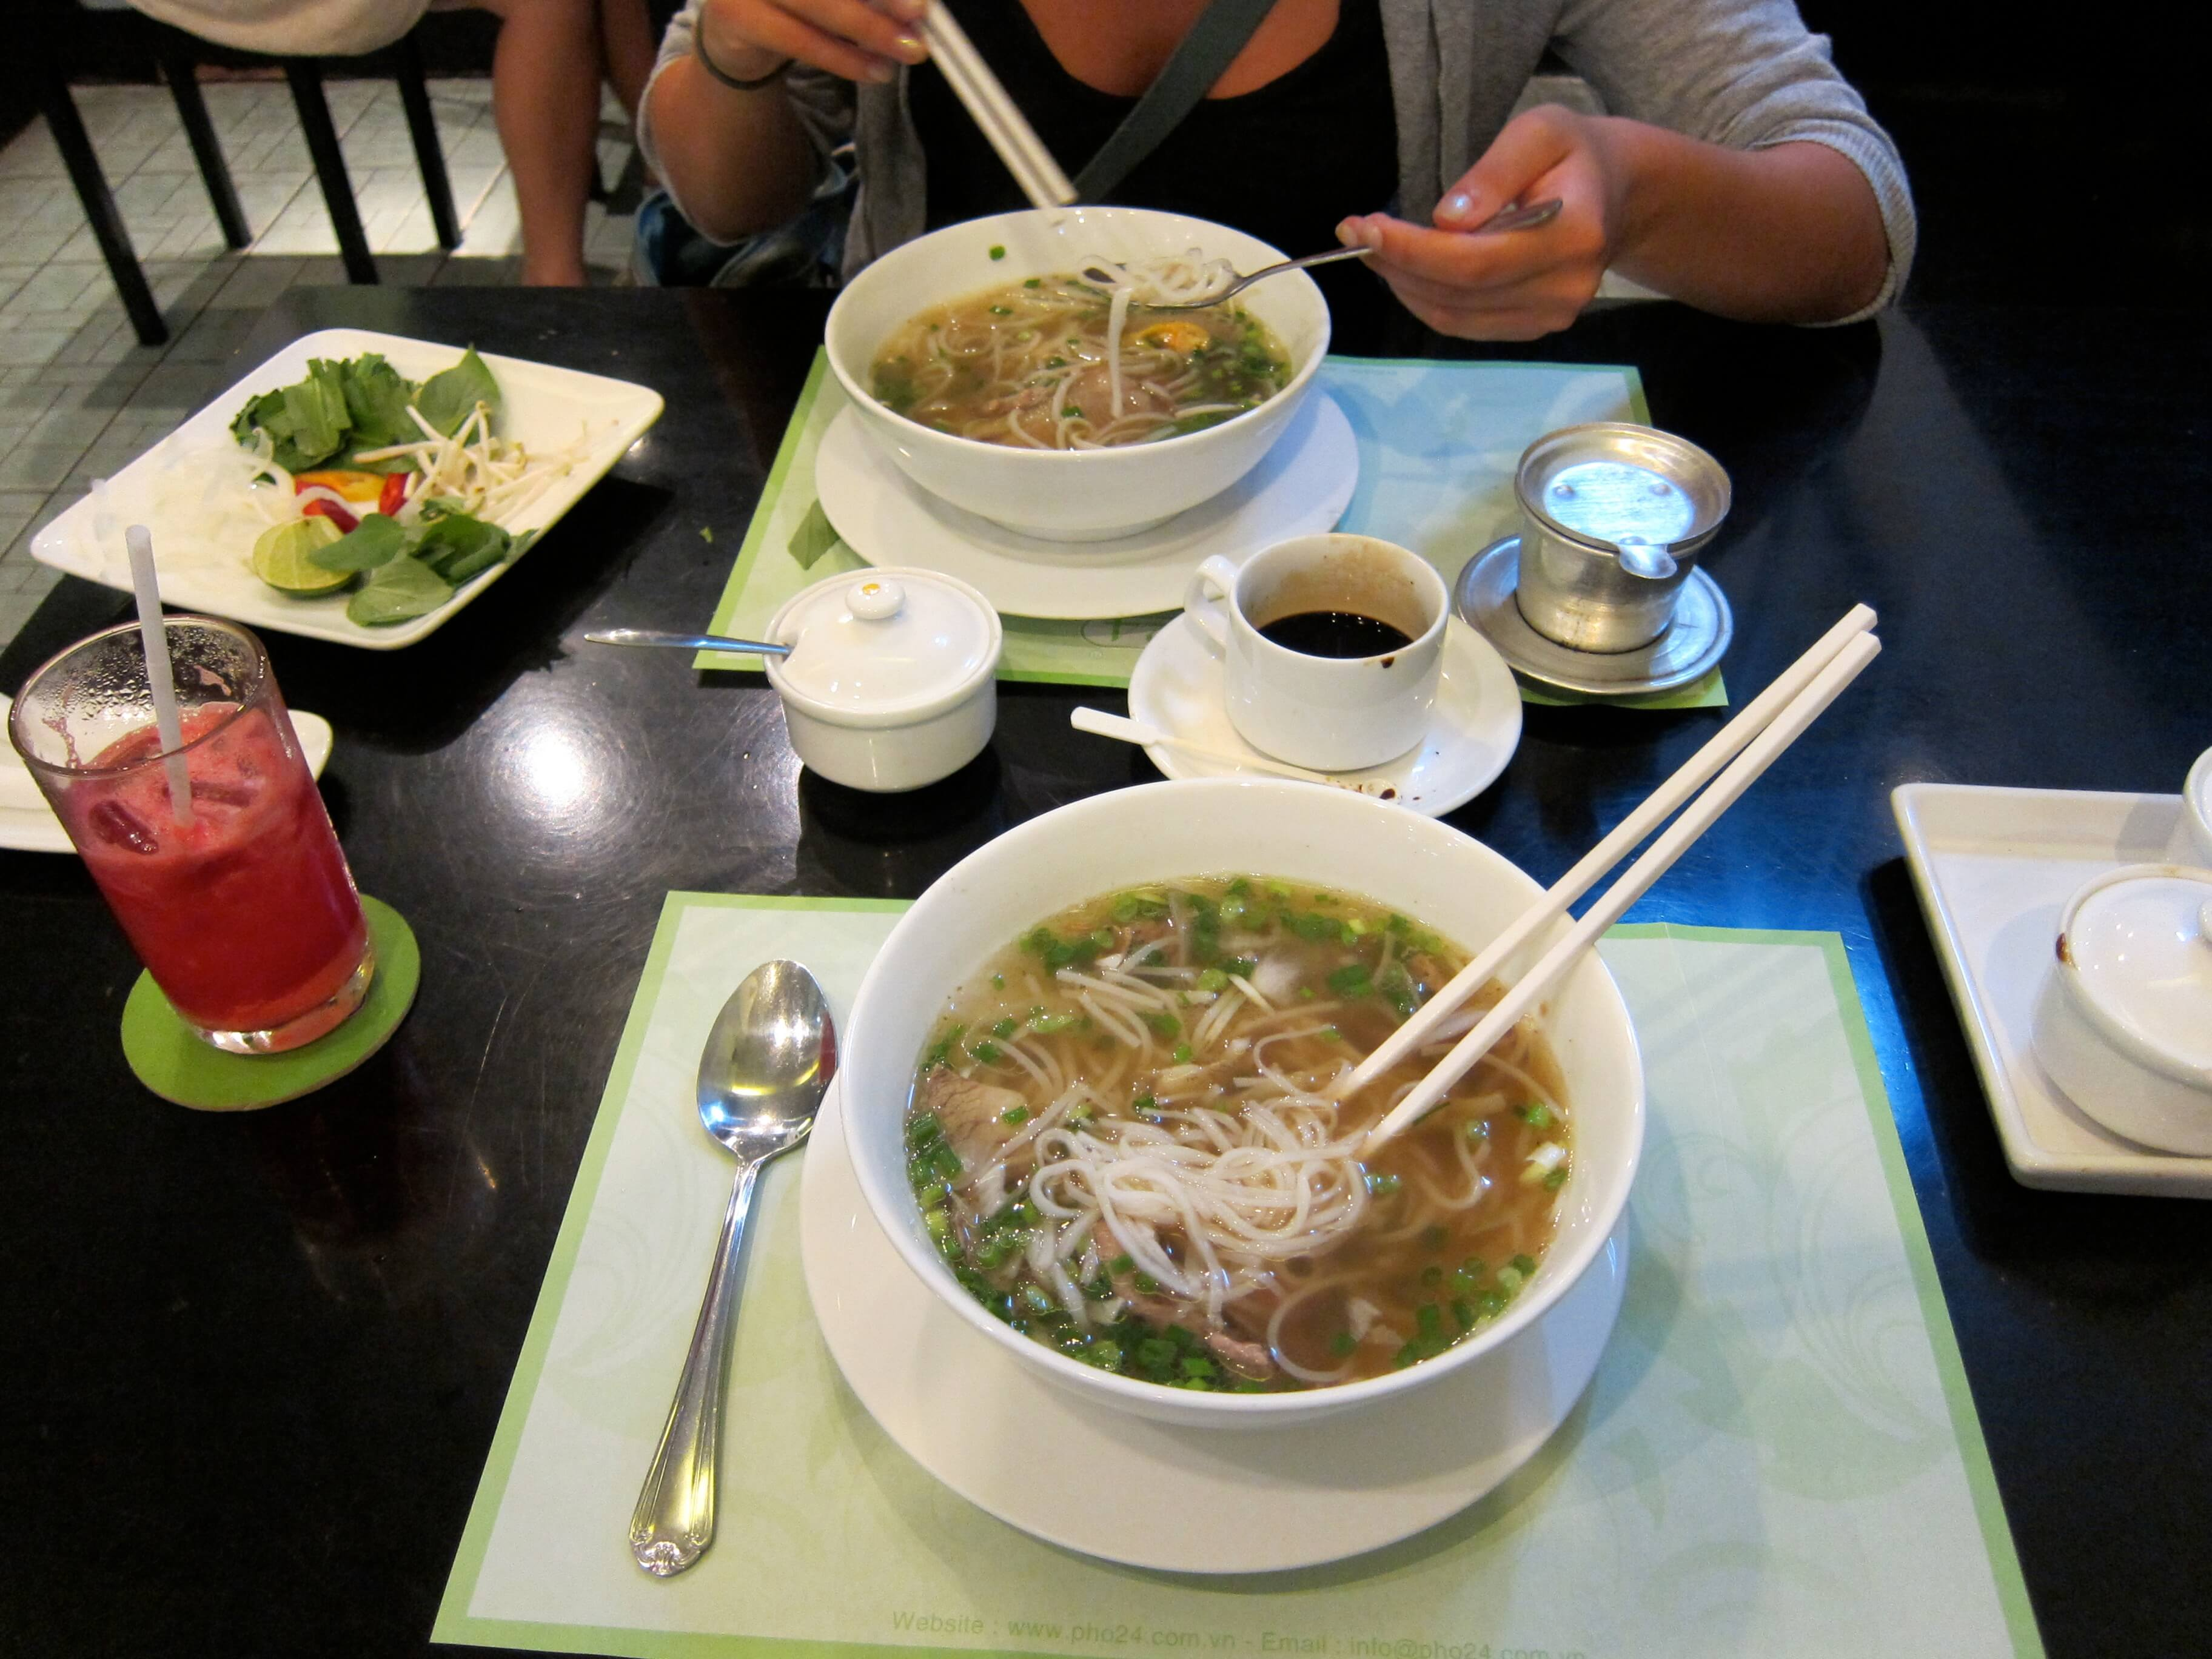 Ho Chi Minh City, Vietnam: What to Do, Where to Eat and More